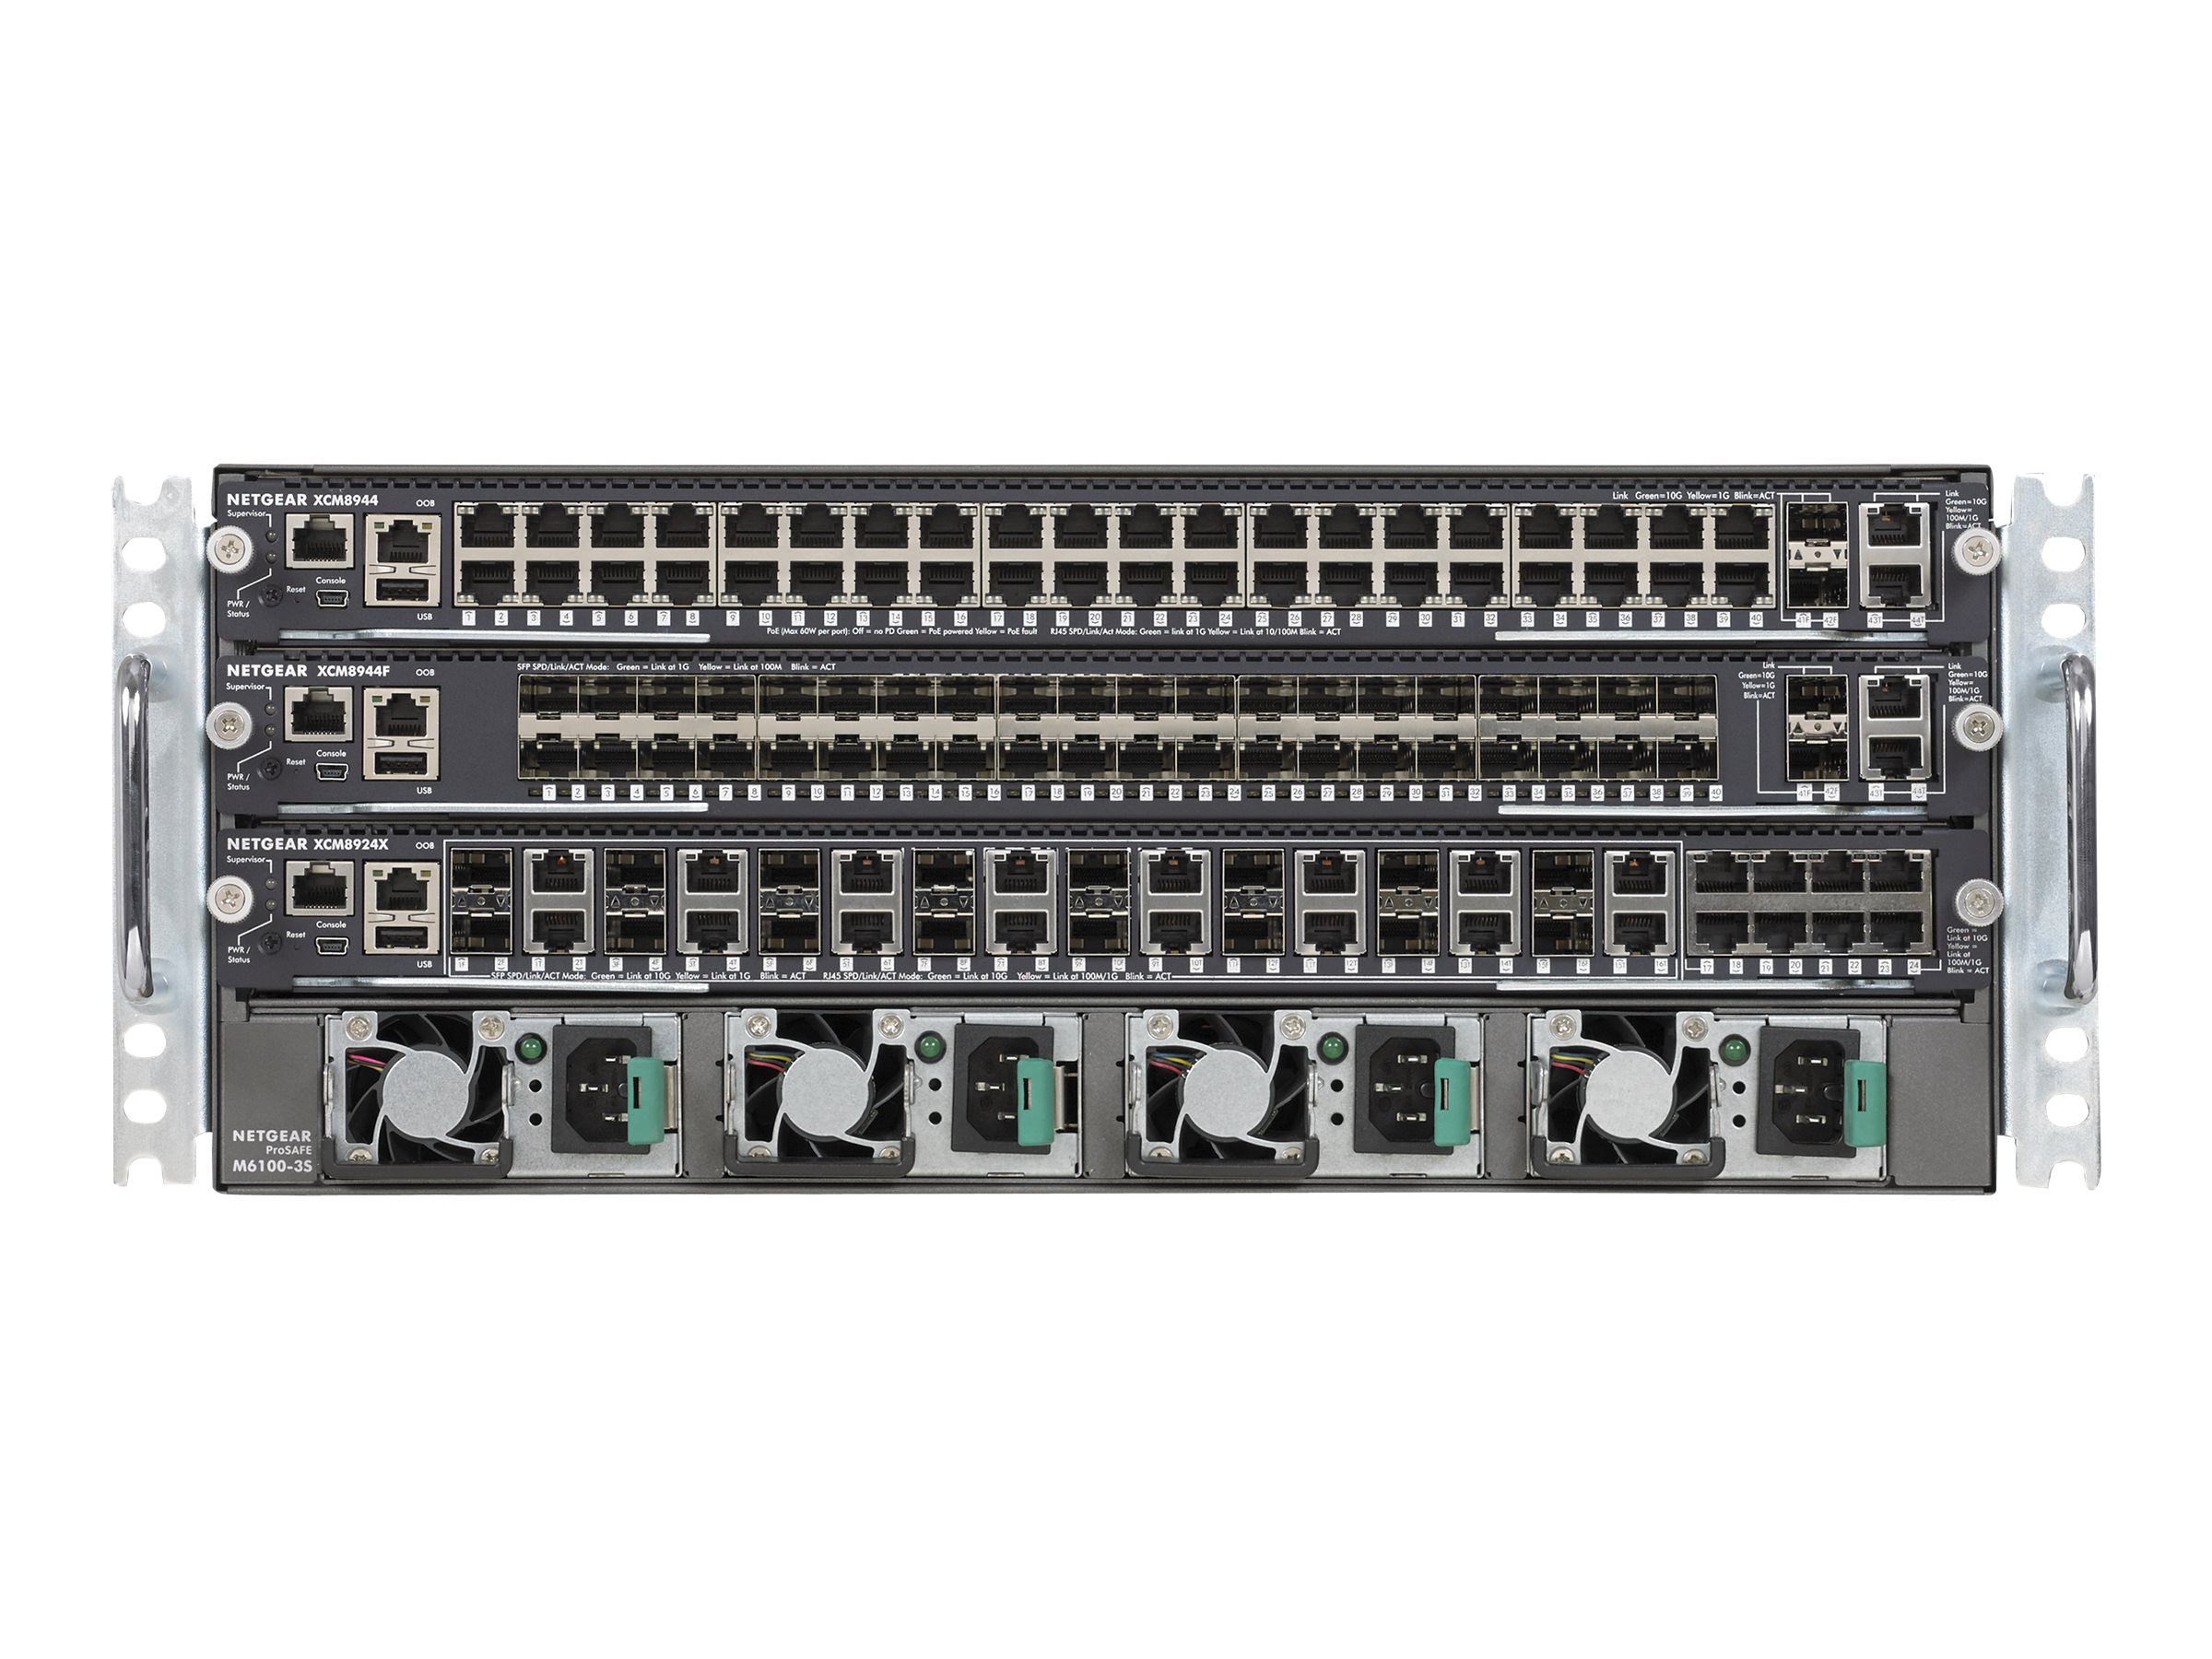 Netgear M6100-44GF3  Chassis Starter Kit Bundle, XCM8903SF-10000S, 24631763, Network Switches